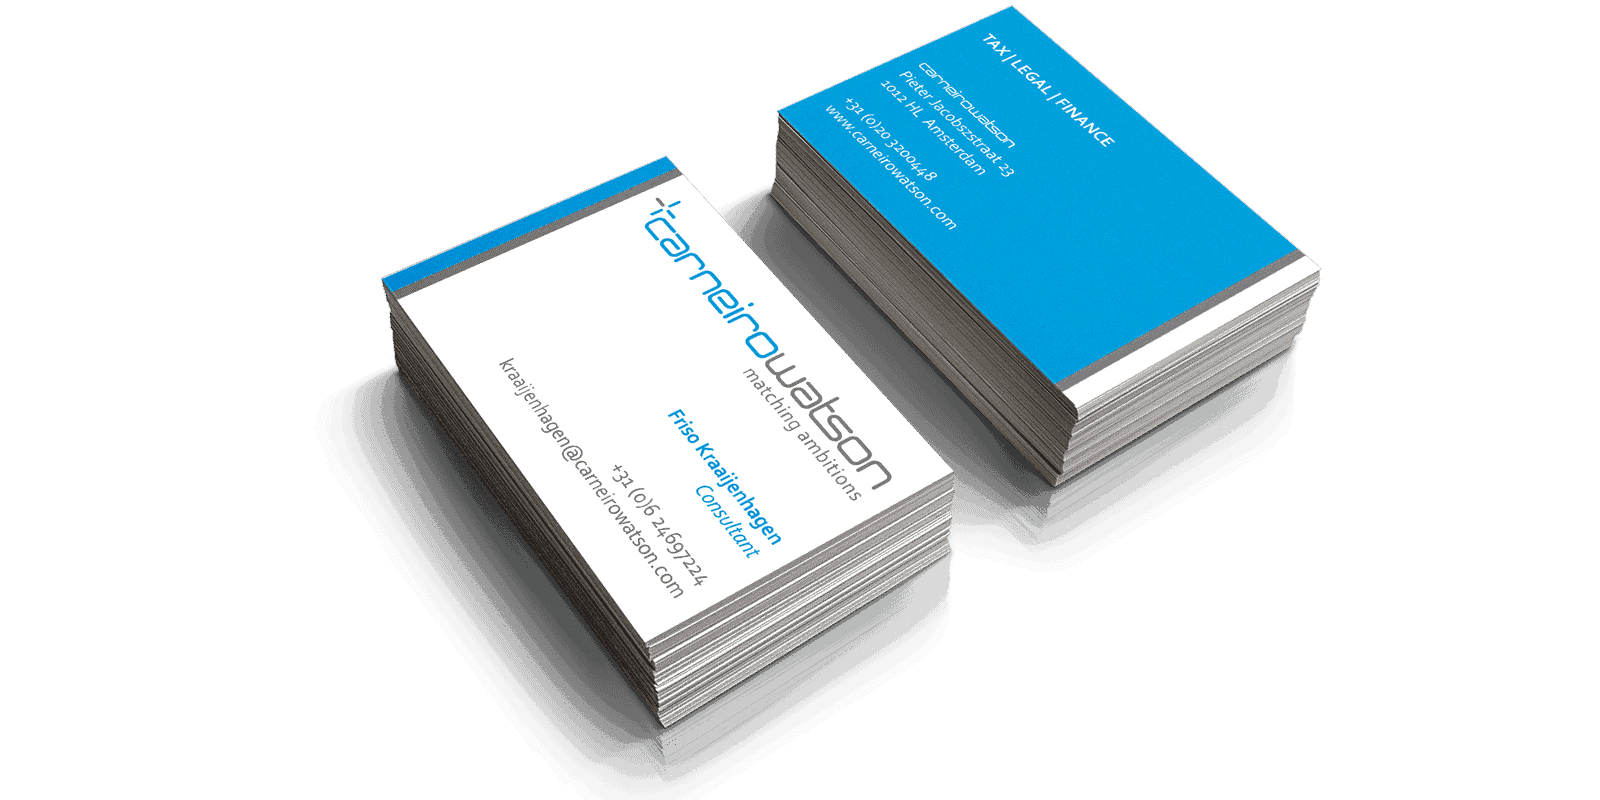 Business Card design for Carneiro Watson, as part of a total Corporate Identity Design